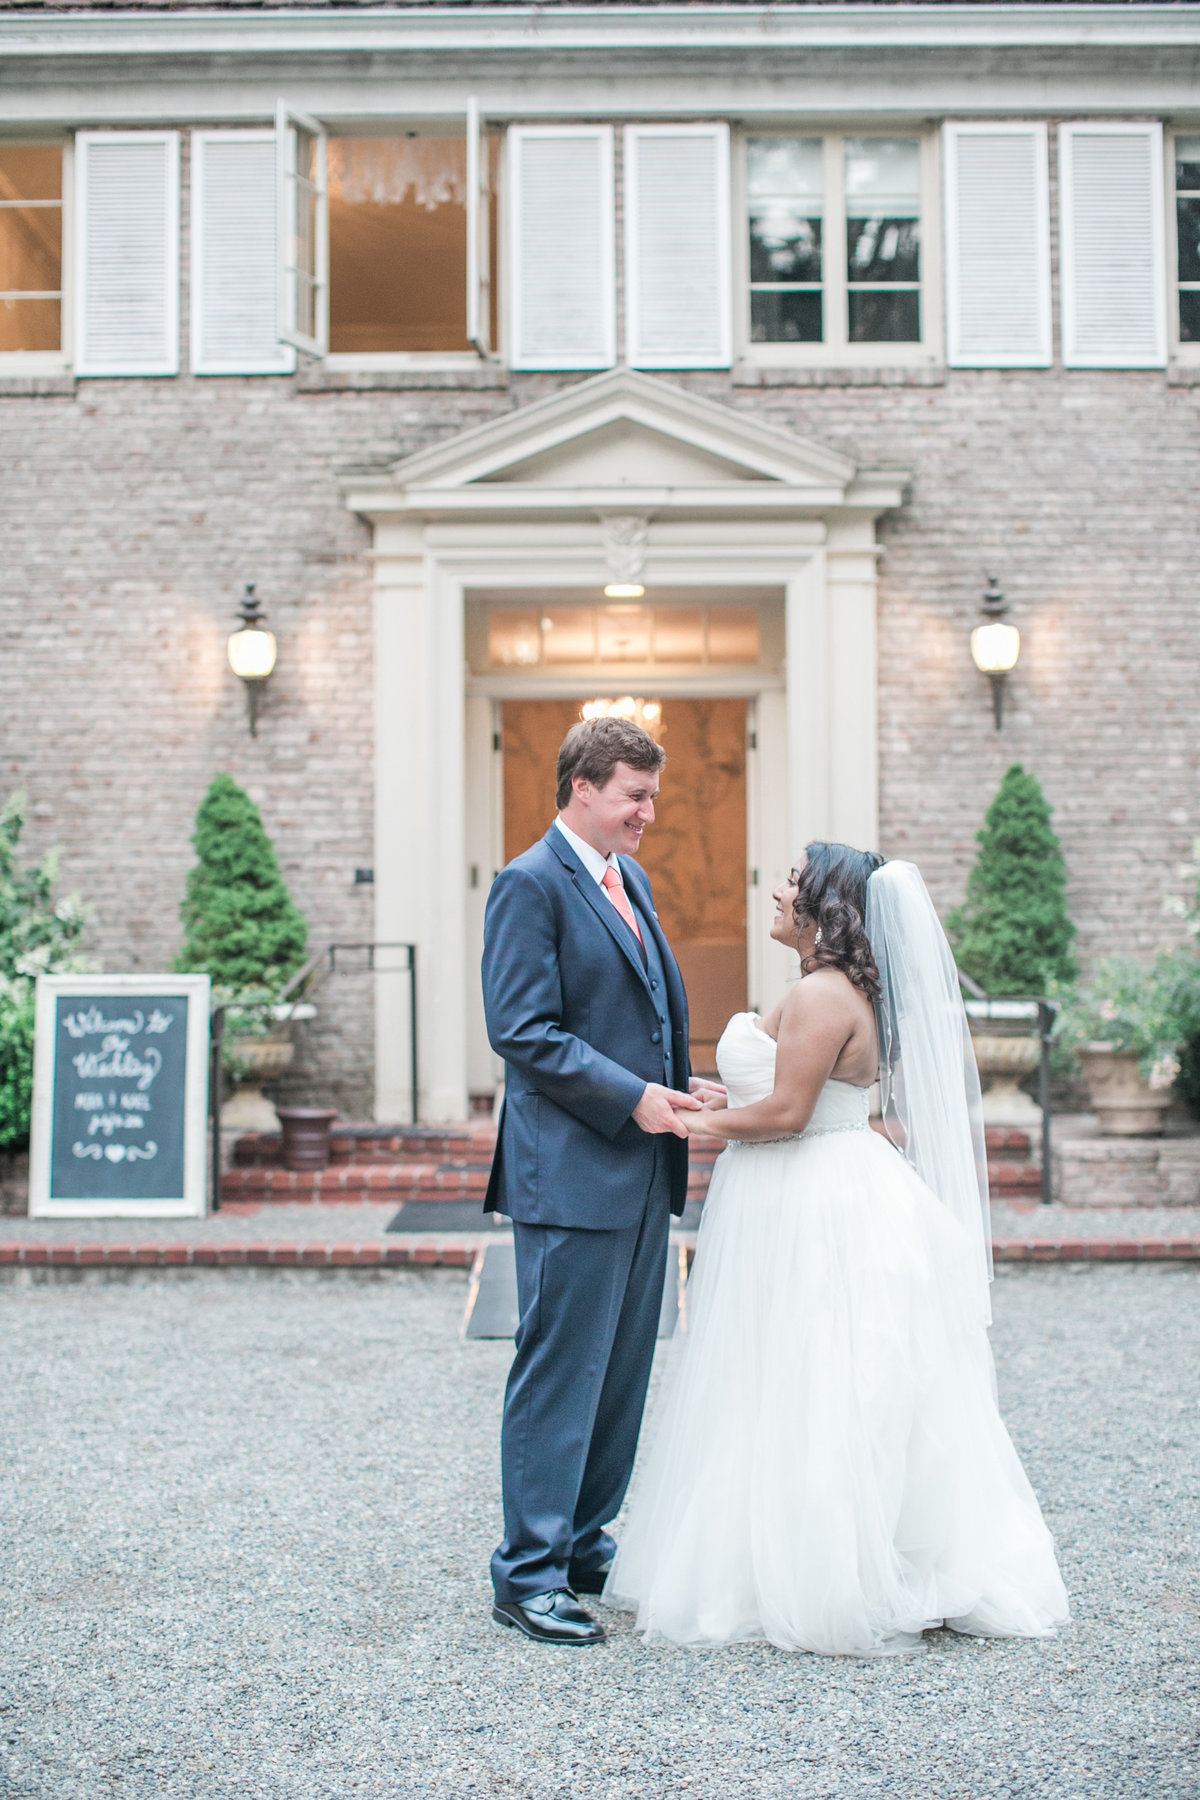 Mira_Kael_Lakewold_Gardens_Wedding-Eva_Rieb_Photography-1310